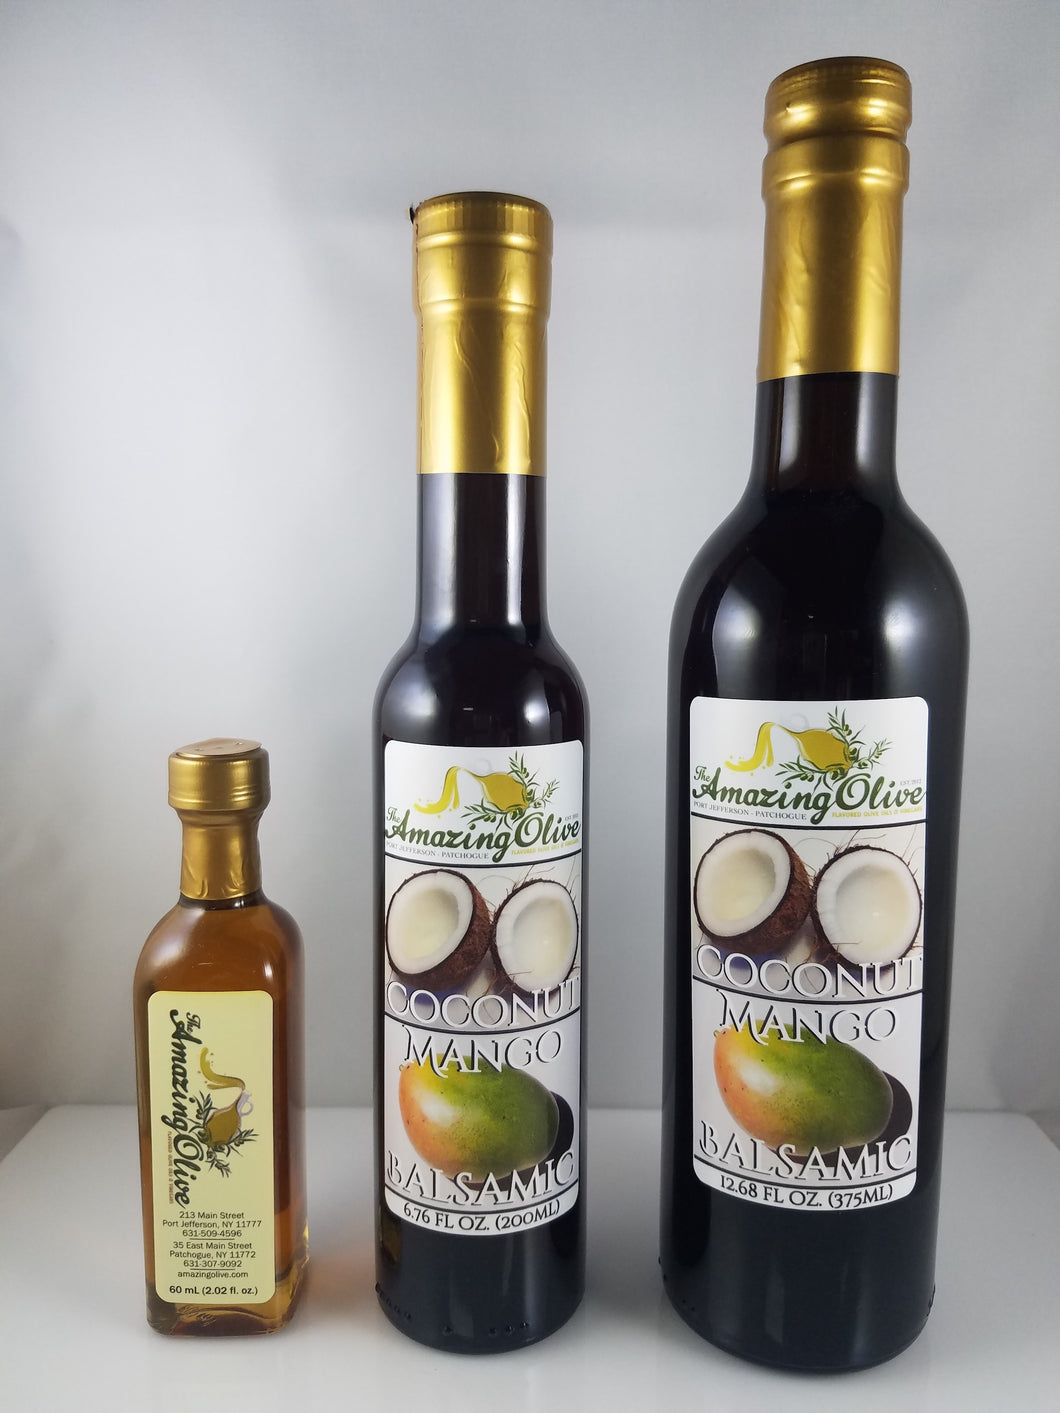 Coconut Mango Twist Balsamic Vinegar